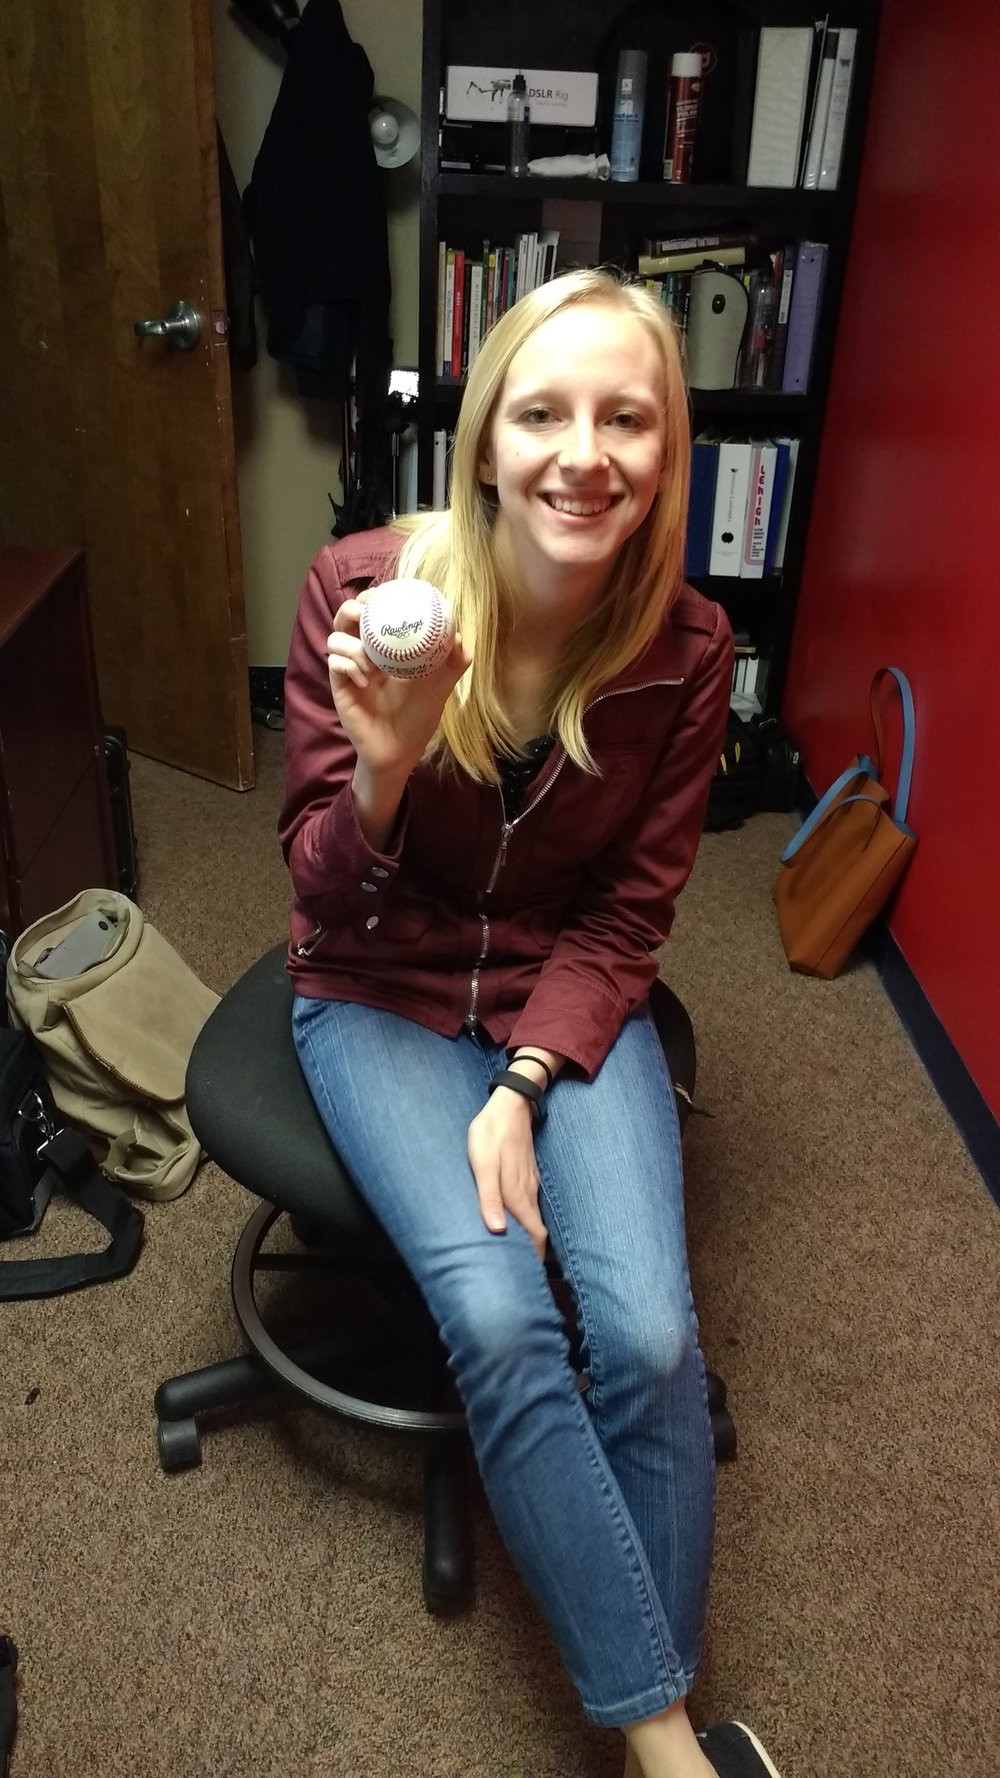 Mary Erny ('16 - Broadcast Media) holding her favorite gift. A baseball signed by all of her family members.